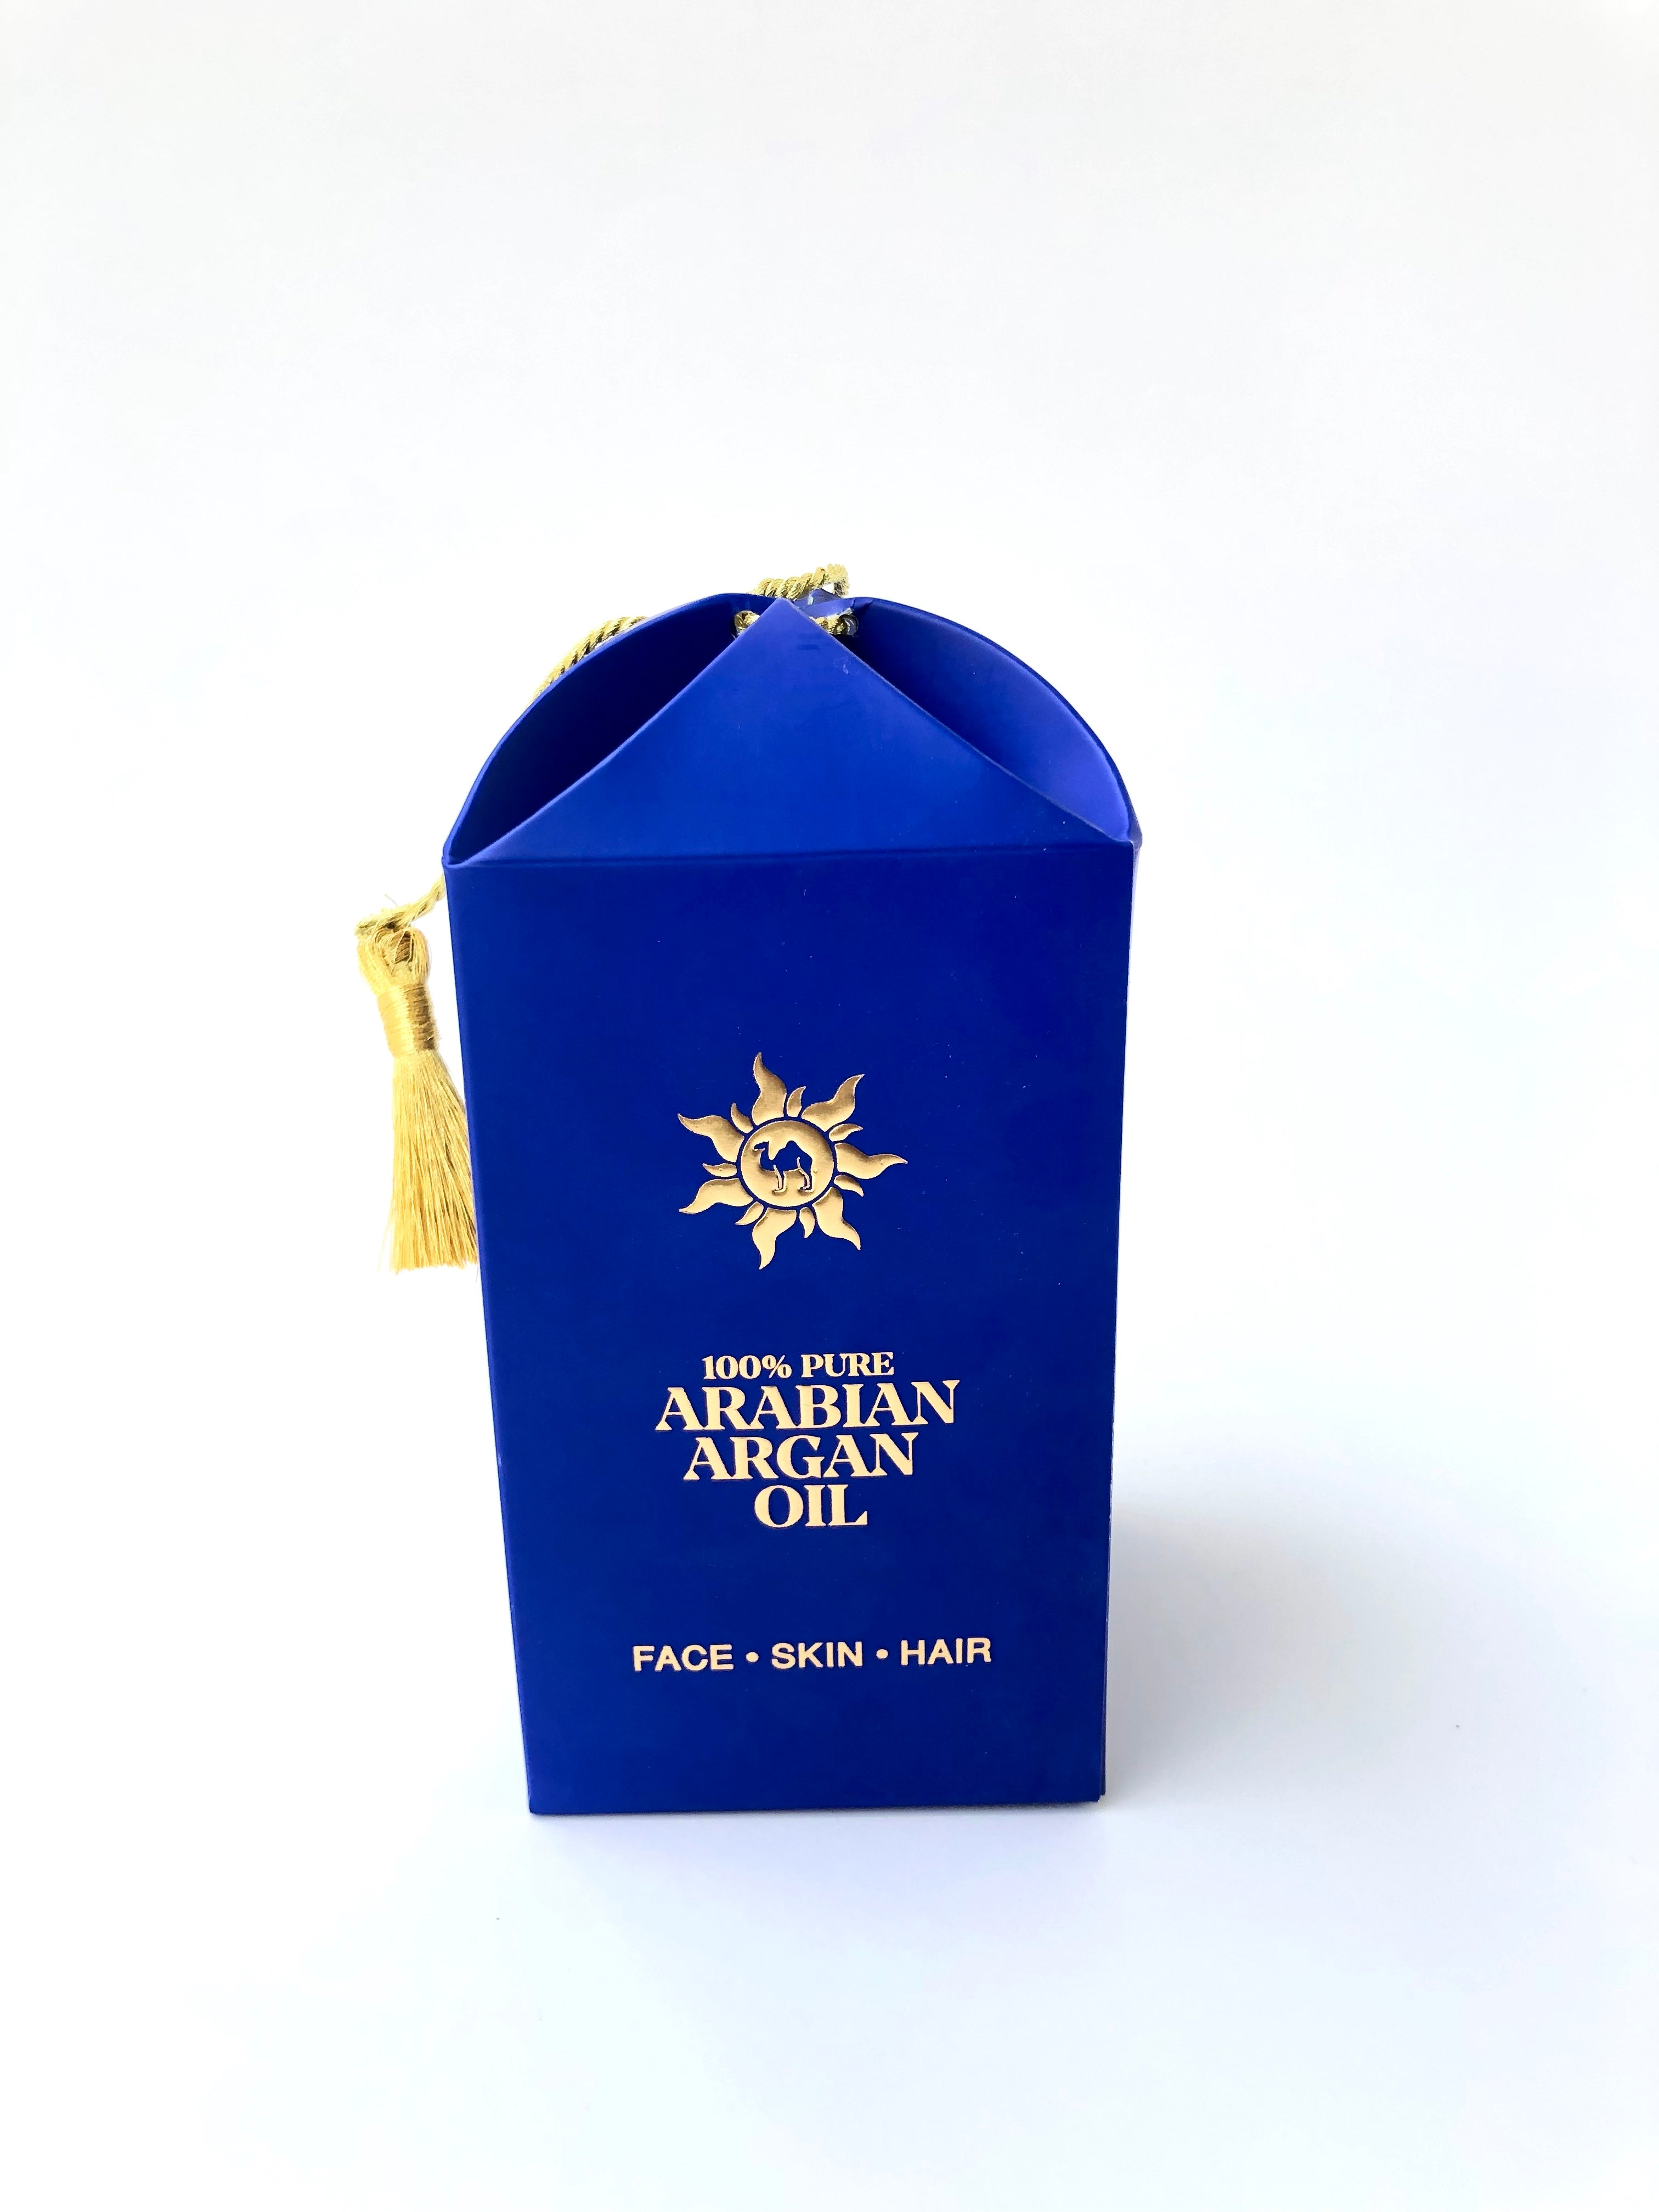 Arabian Argan Oil